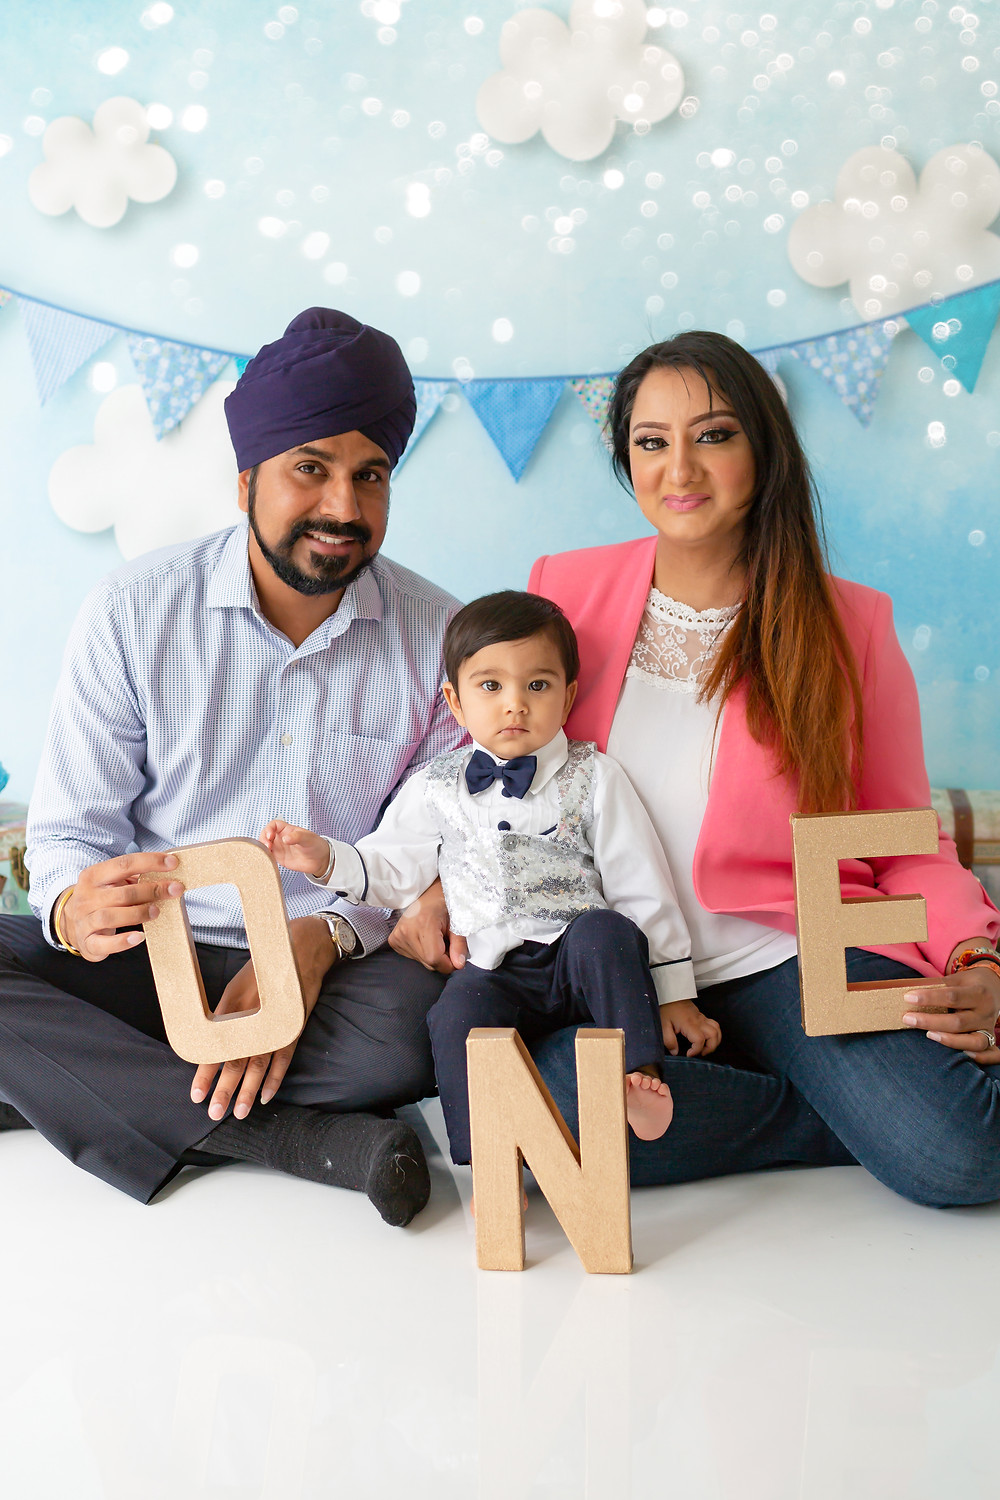 smash cake photography, Baby Photographer in London, family moments are the best!, Little boy is turning one years old!